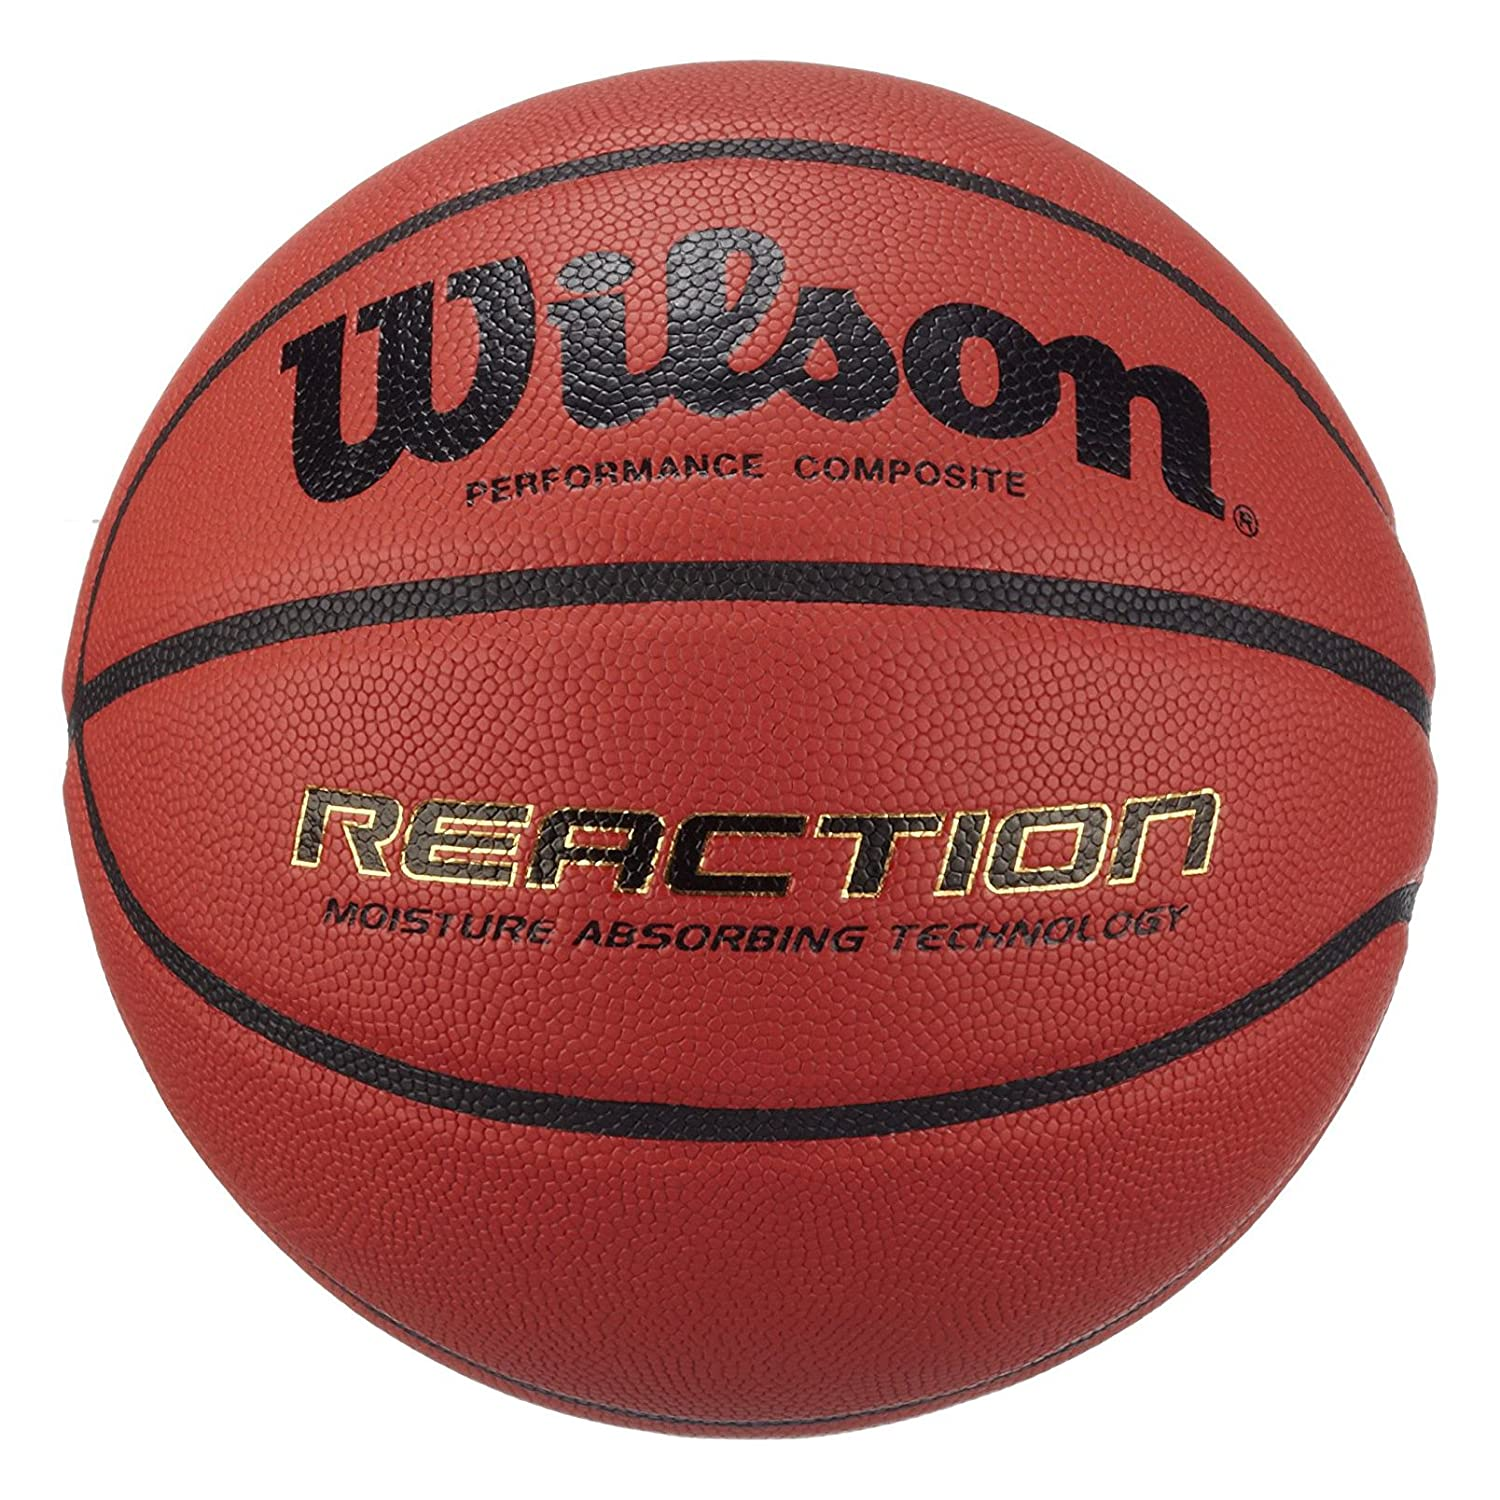 Wilson Indoor-Basketball, Wettkampf, Sportparkett, Granulat, Linolium- oder PVC-Boden, Reaction